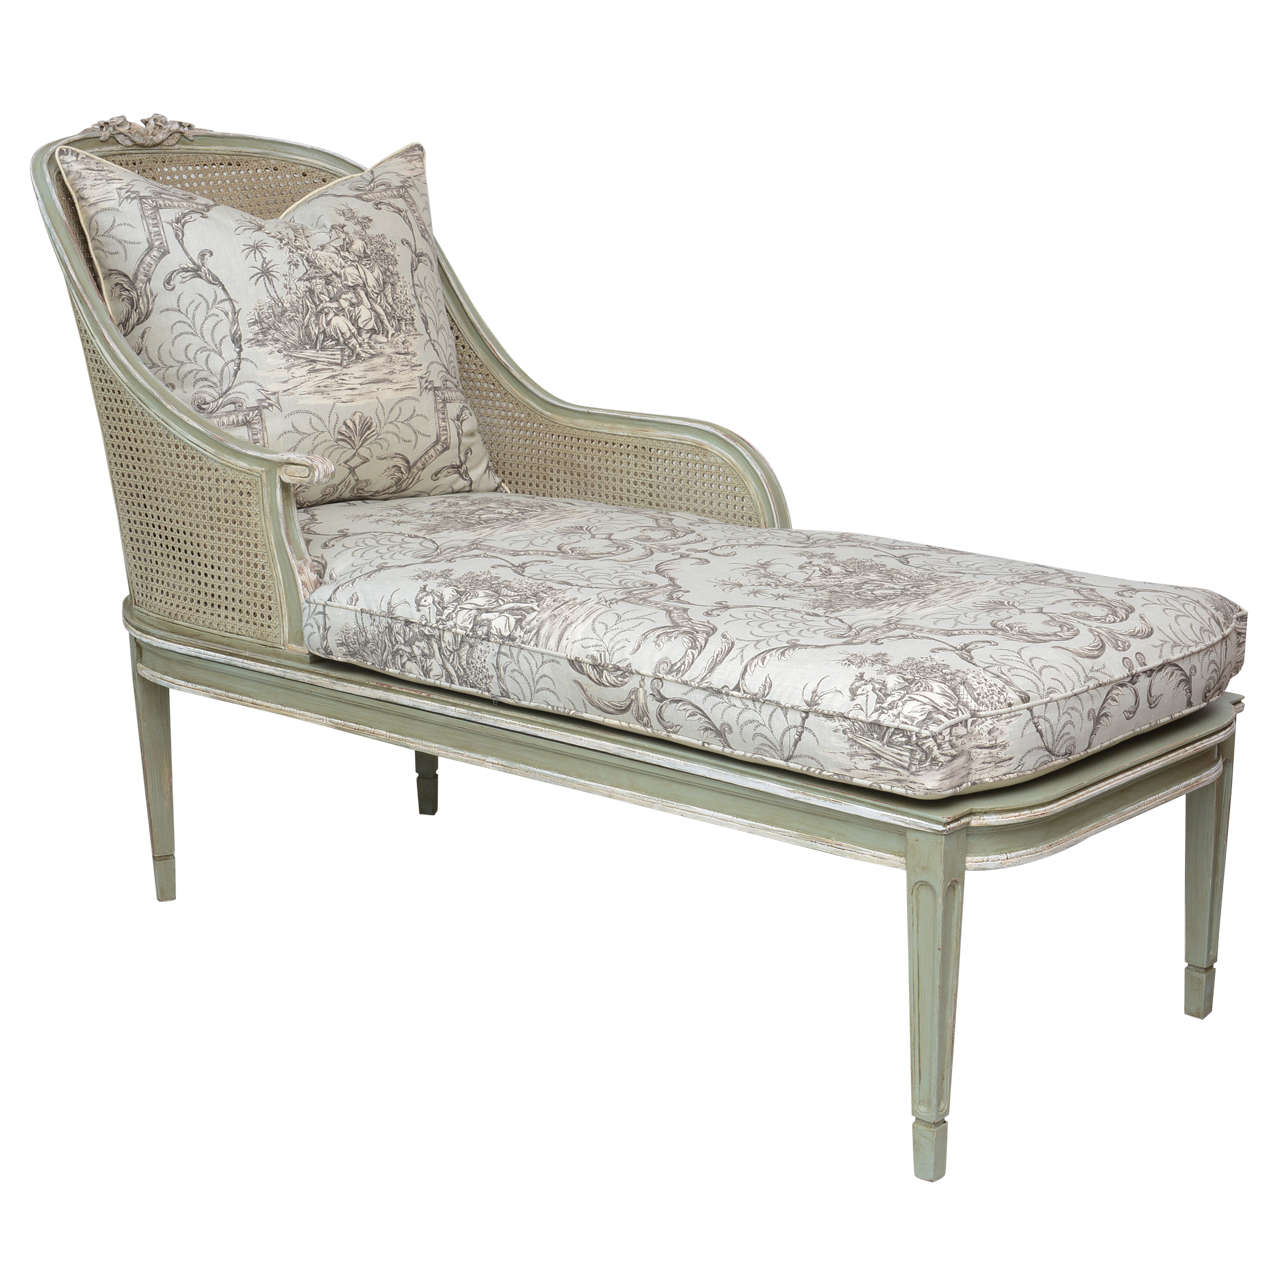 style free pictures lounge o chaise french gold longue awesome us ornate joshkrajcik medium delivery htm